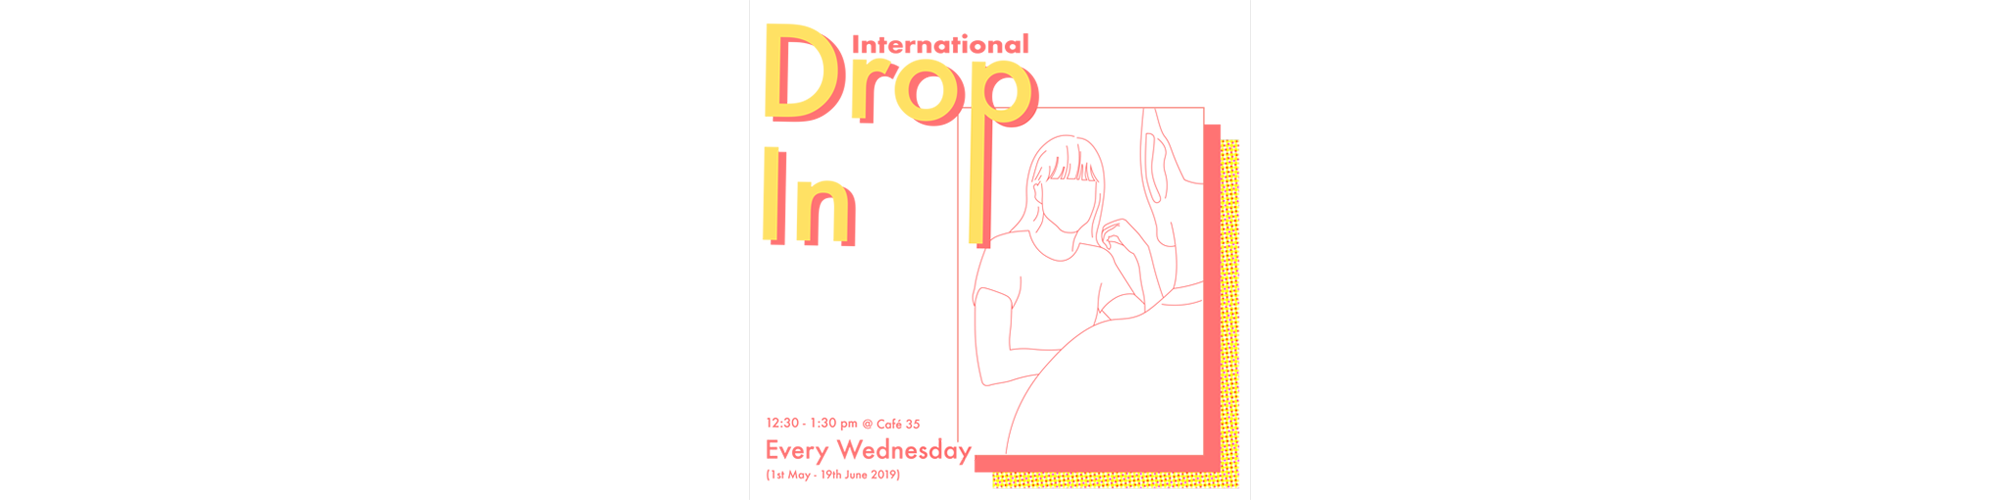 International Drop In